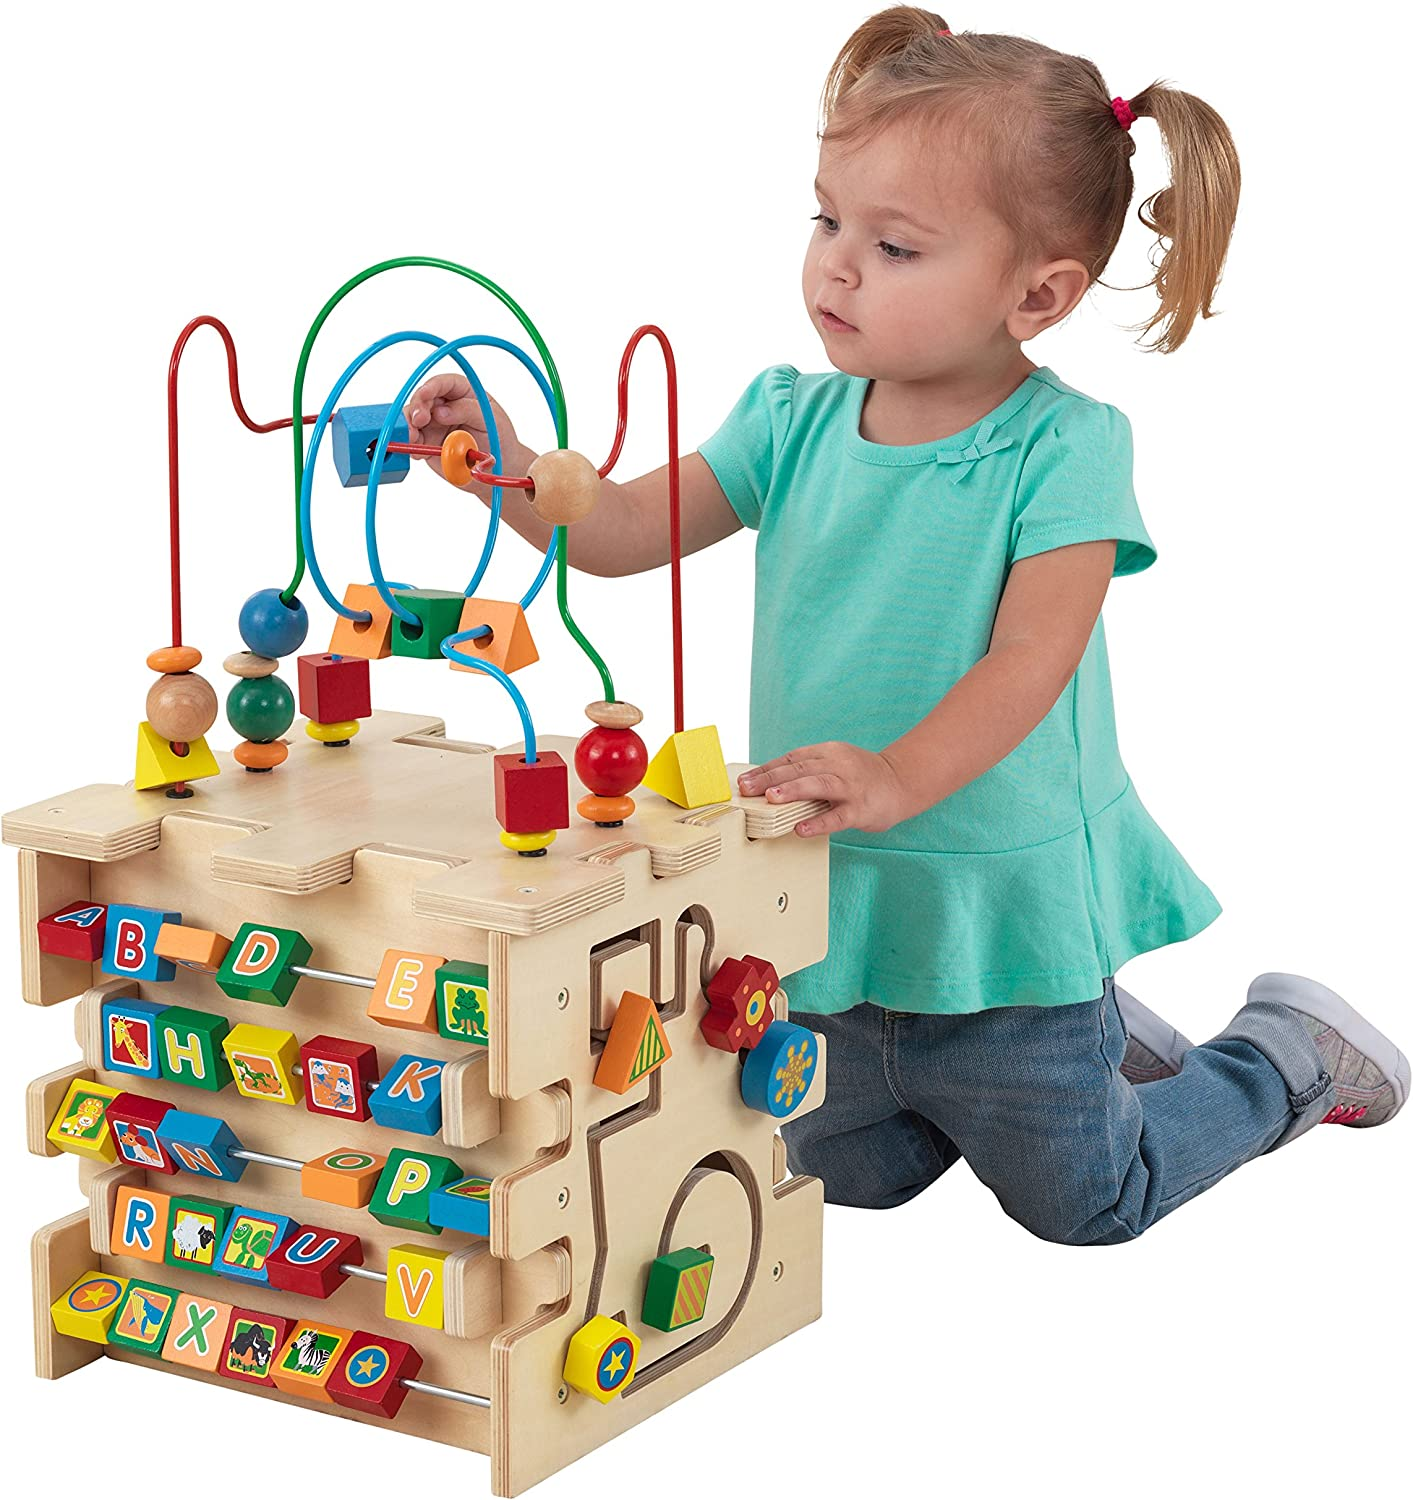 Top 10 Best Activity Cubes (2020 Reviews & Buying Guide) 3